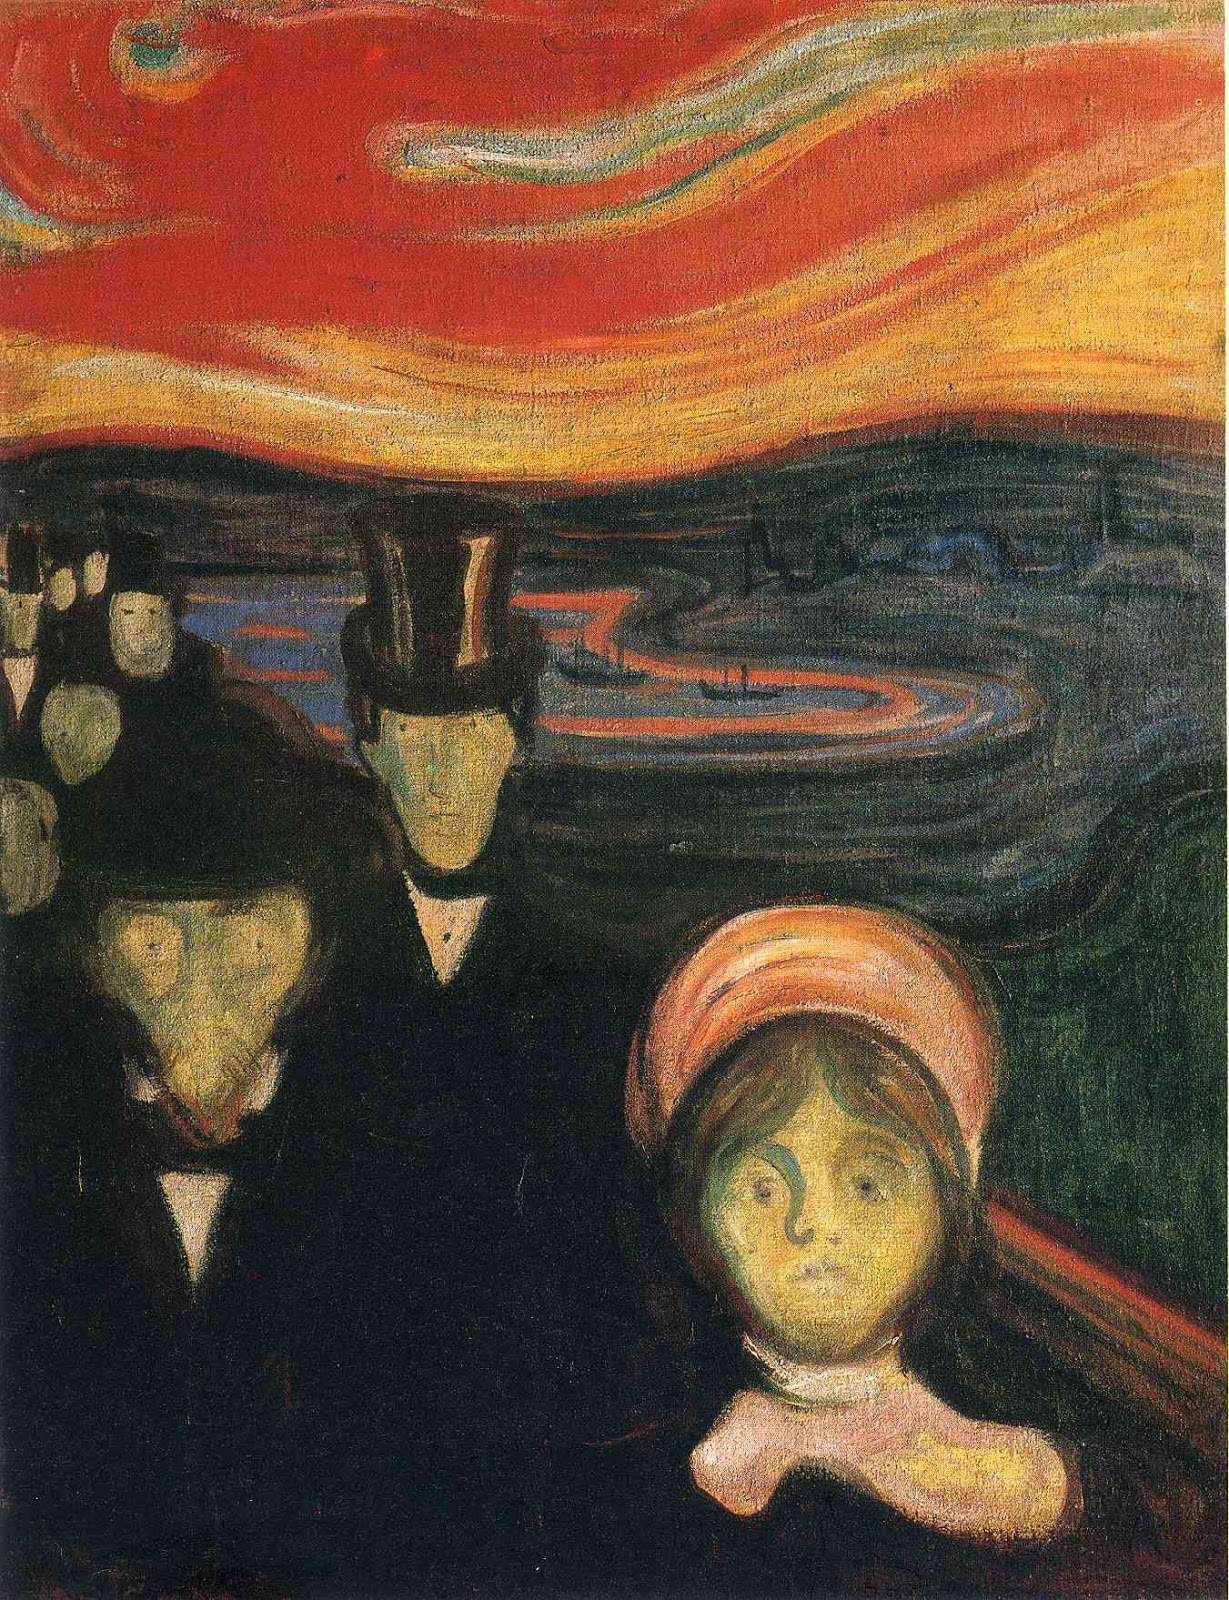 a biography and life work of edvard munch a norwegian artist Edvard munch was a norwegian visual artist who was born in 1863 he has had numerous gallery and museum exhibitions, including at the rijksmuseum and at.